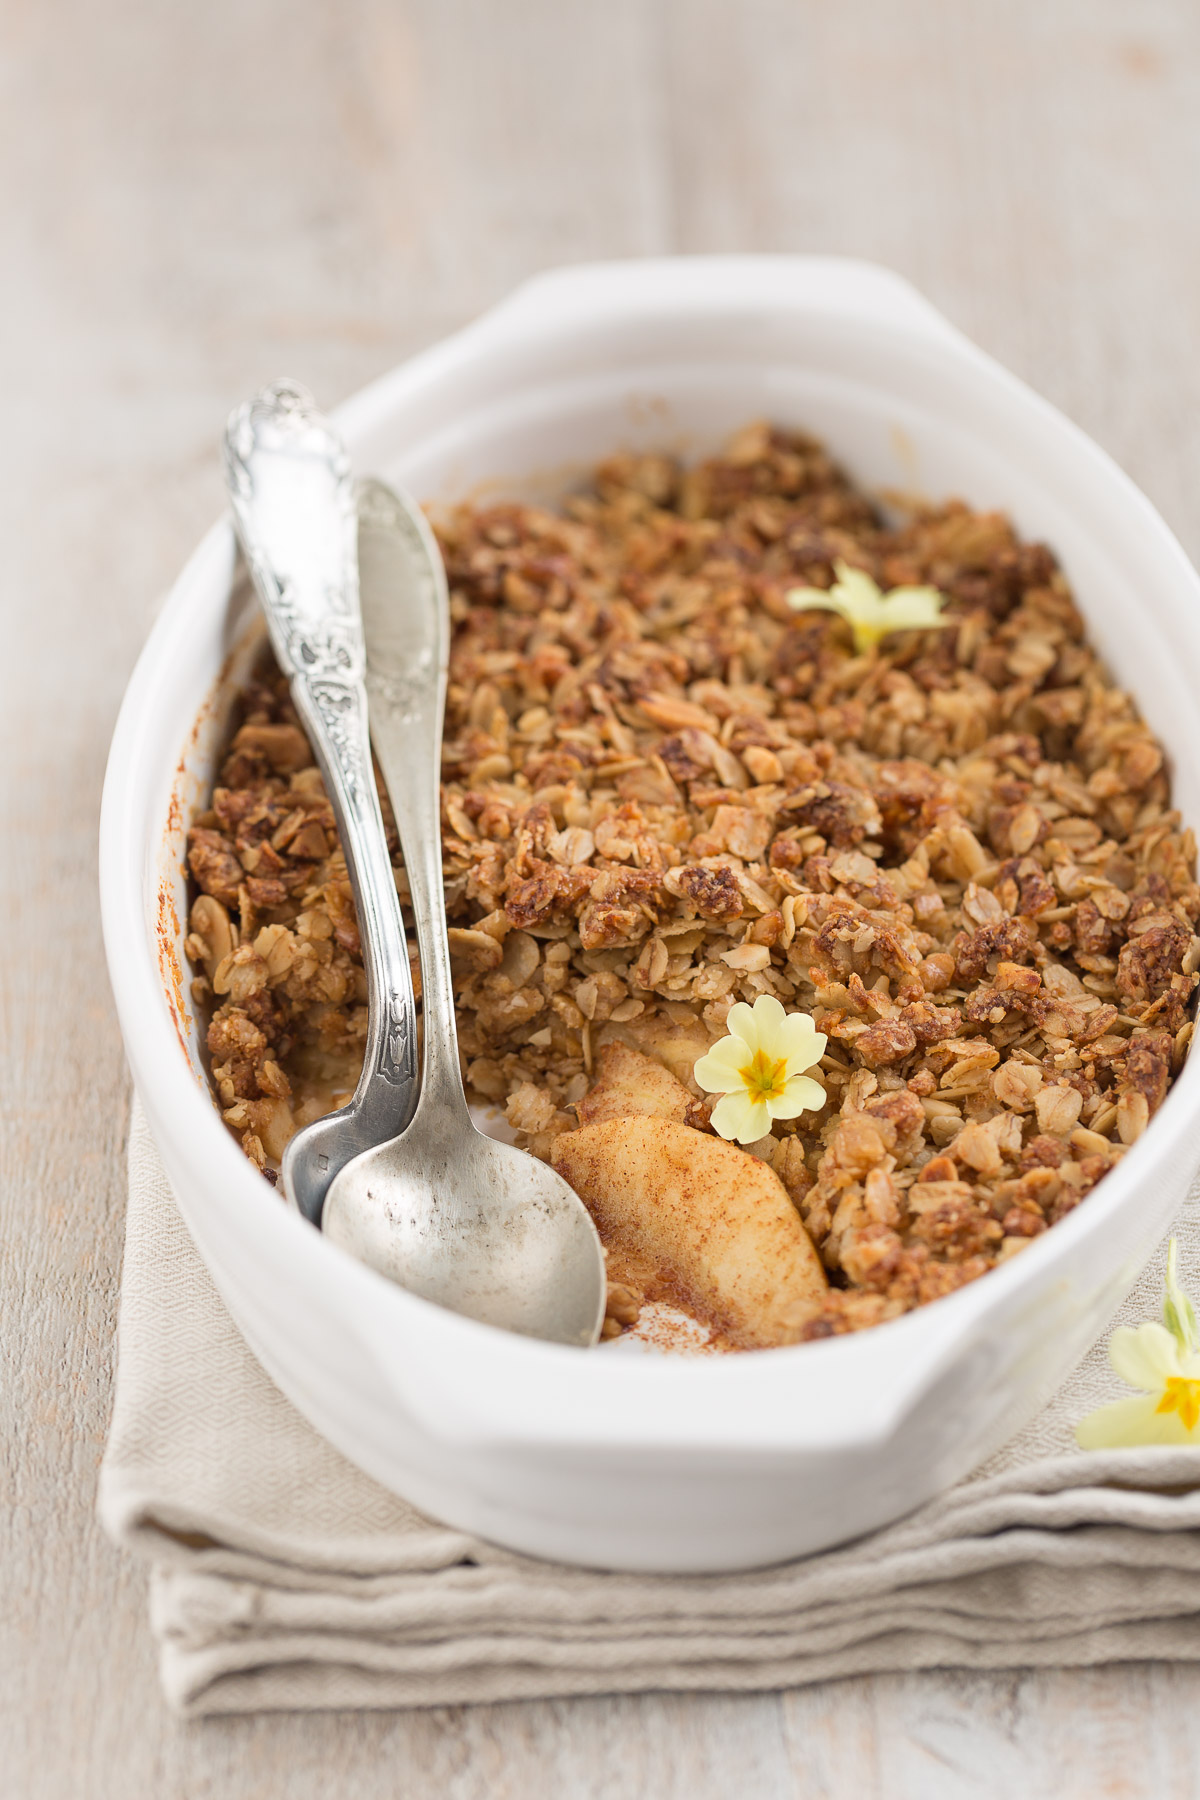 ricetta crumble di mele light vegan senza burro senza glutine senza zucchero - healthy vegan apple crisp sugarfree naturally sweetened #vegan #apple #glutenfree #crisp #crumble .jpg